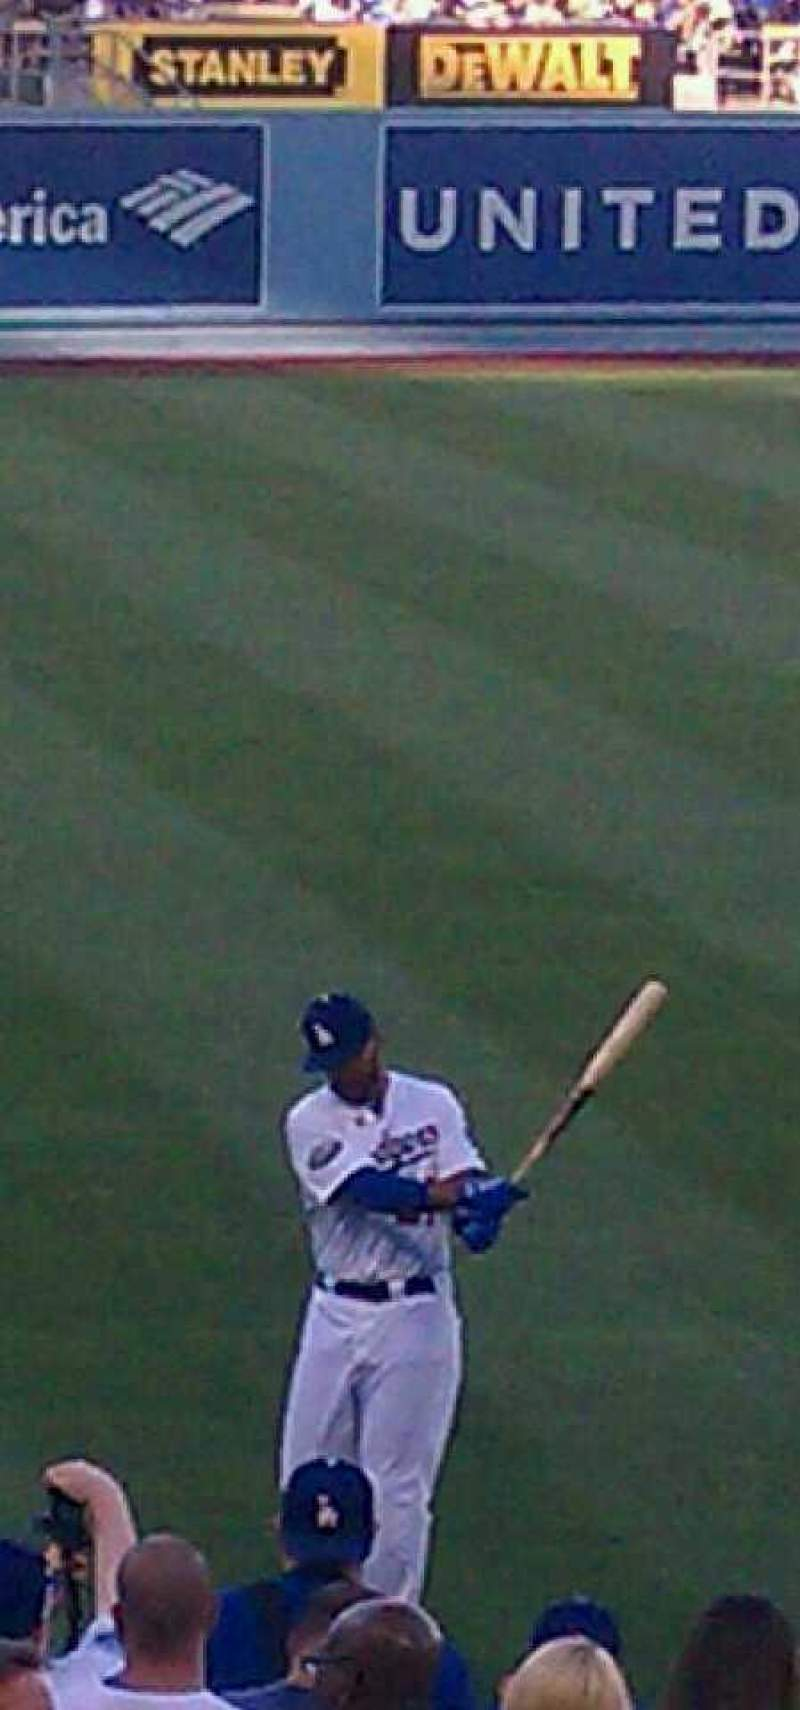 Seating view for Dodger Stadium Section 43RS Row S Seat 1-2